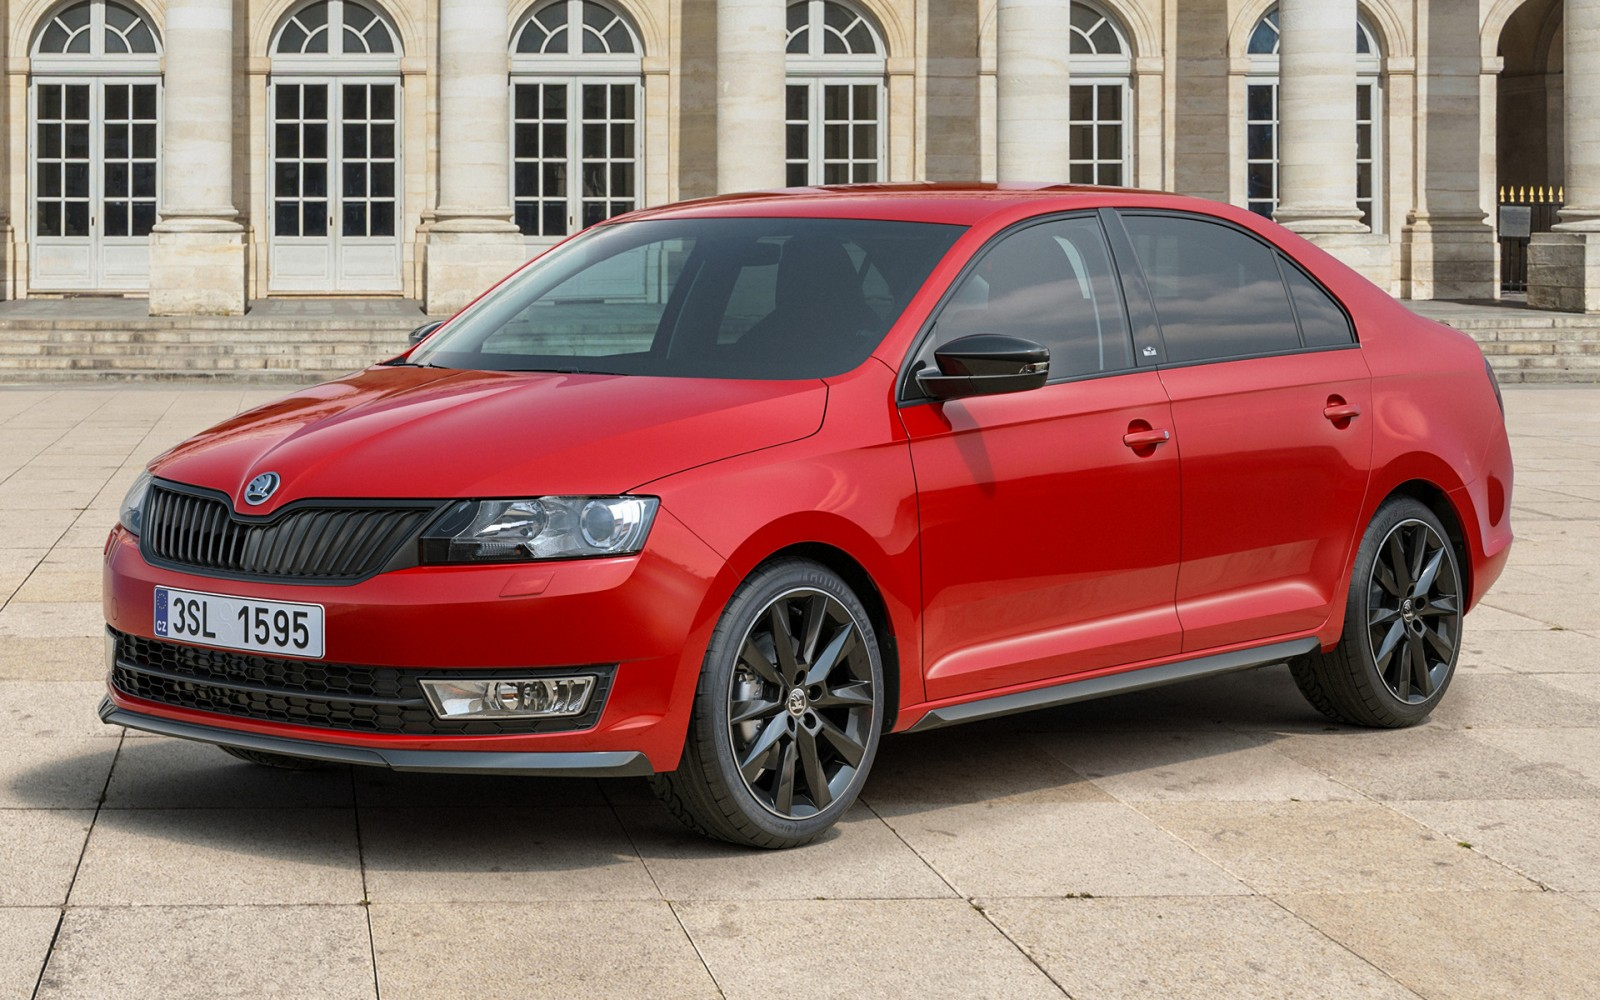 skoda rapid monte carlo edition set to arrive in india by september motoroids. Black Bedroom Furniture Sets. Home Design Ideas